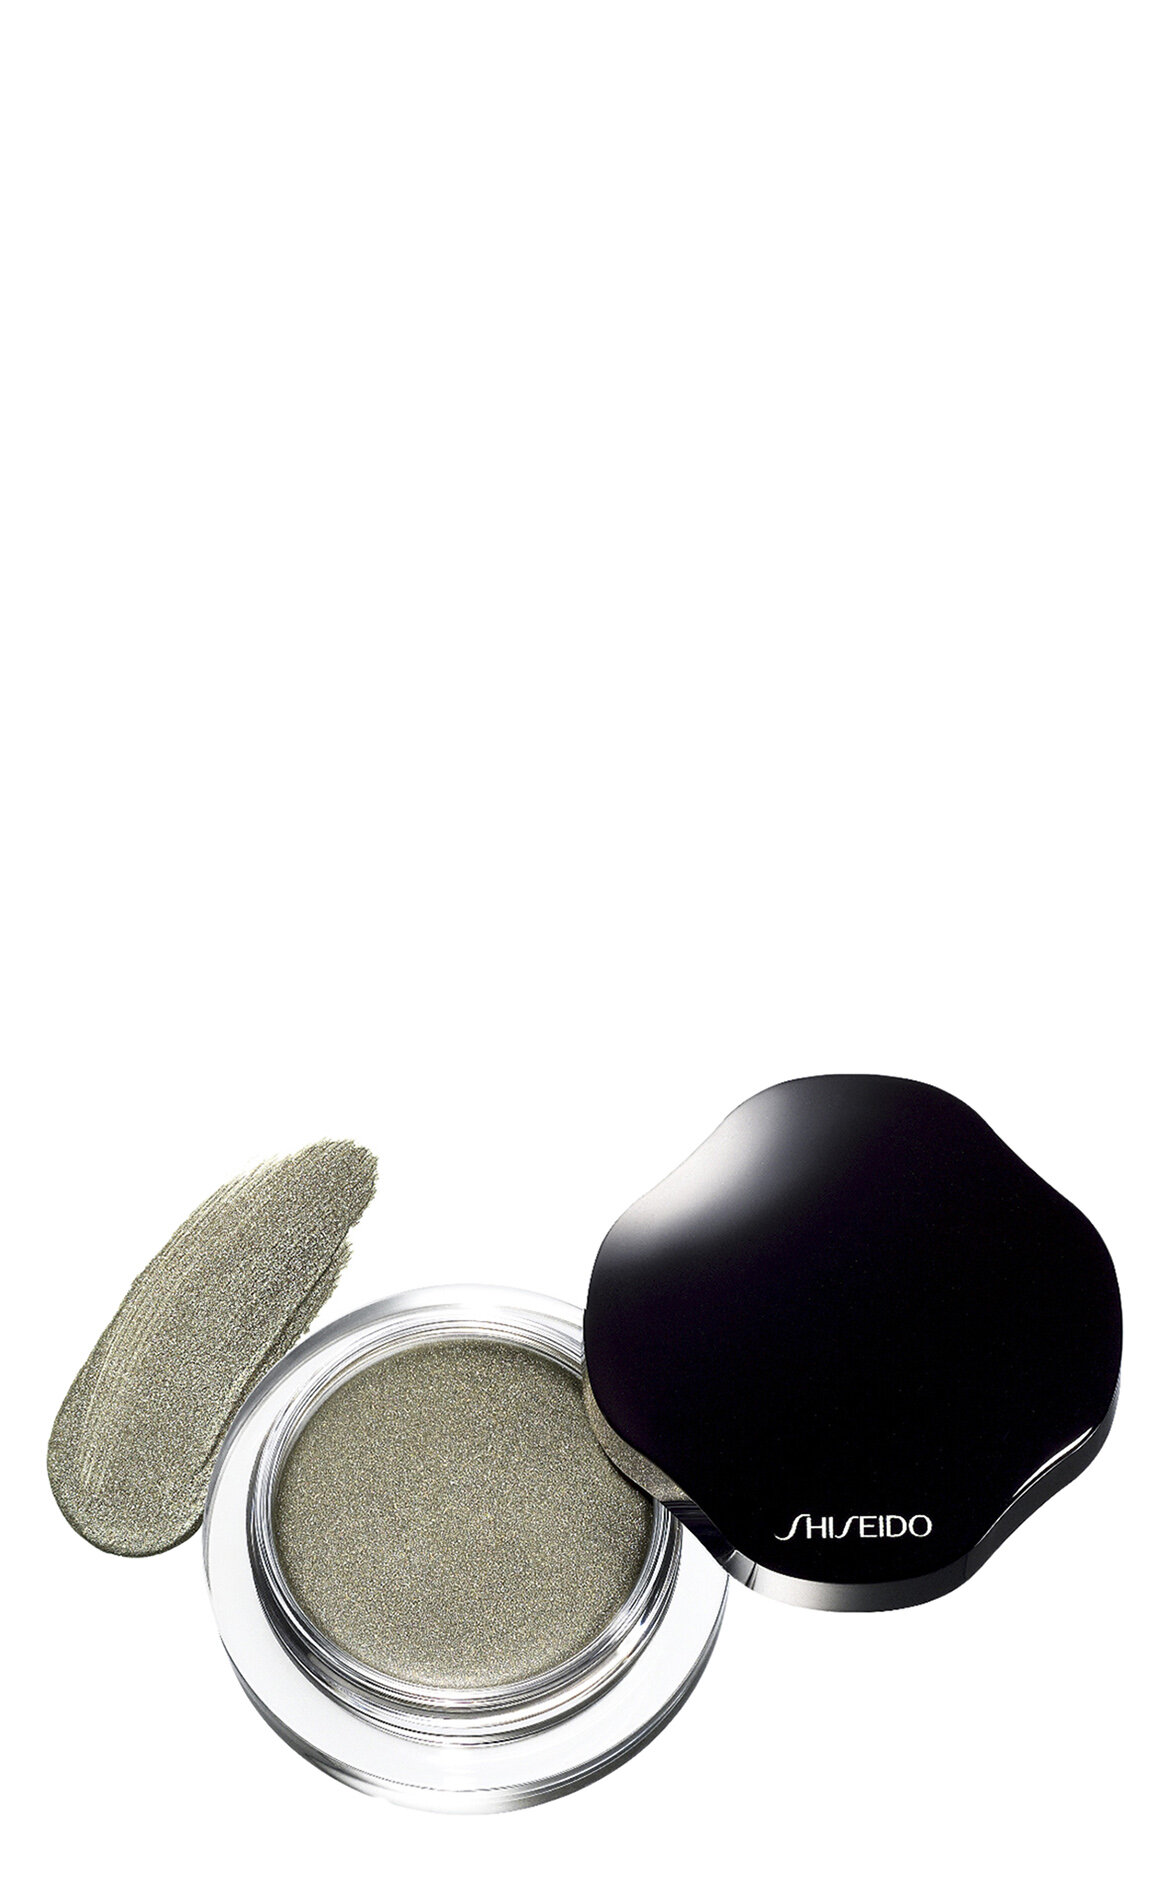 Shiseido-Shiseido Shimmering Cream Eye Color Gr707 Krem Far